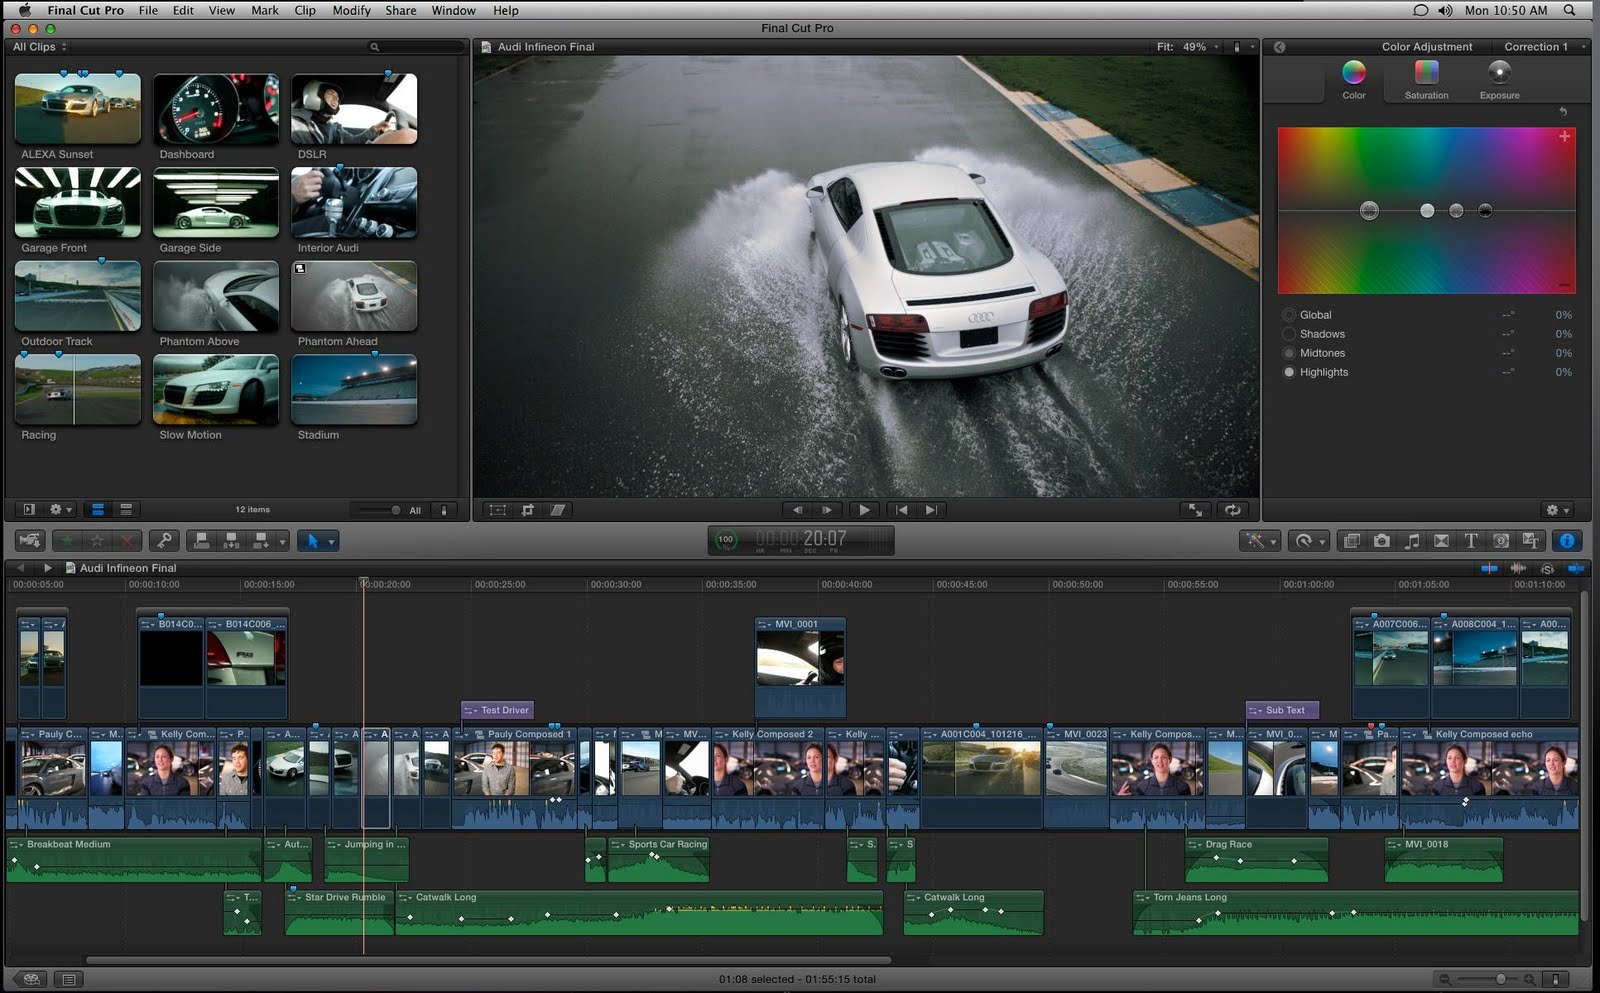 final cut pro for windows 7 64 bit